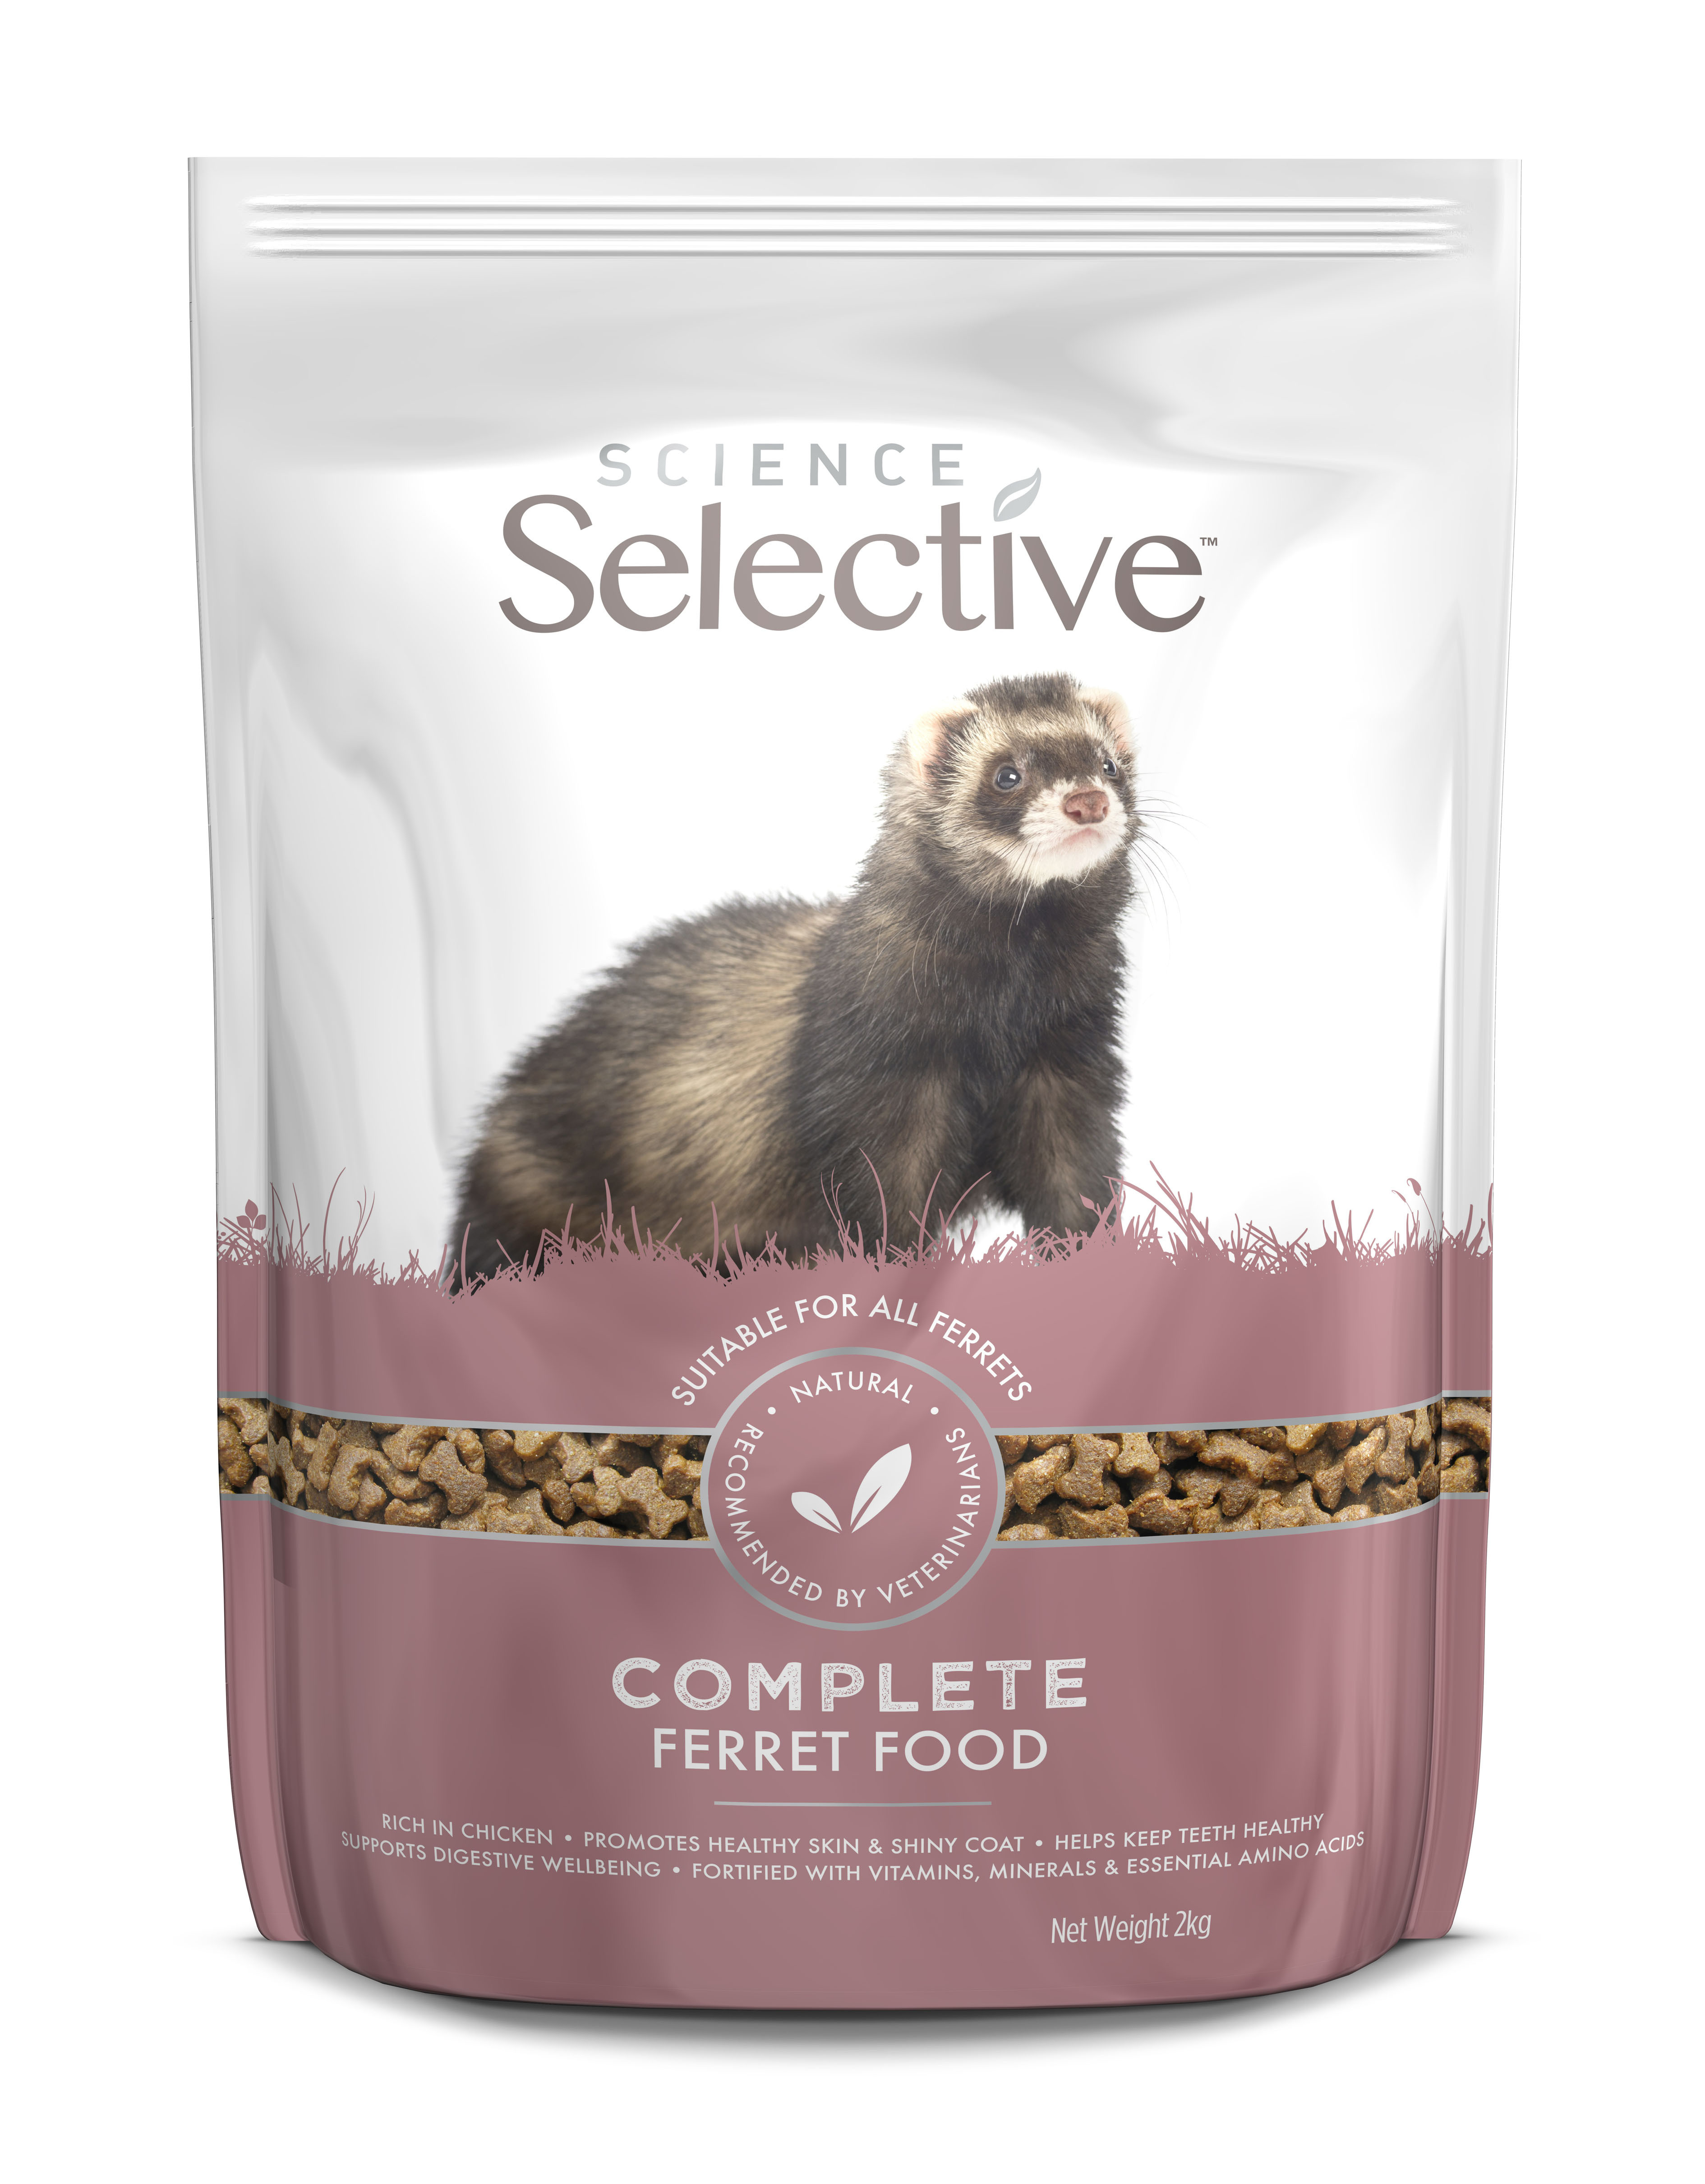 Supreme Science Selective Ferret